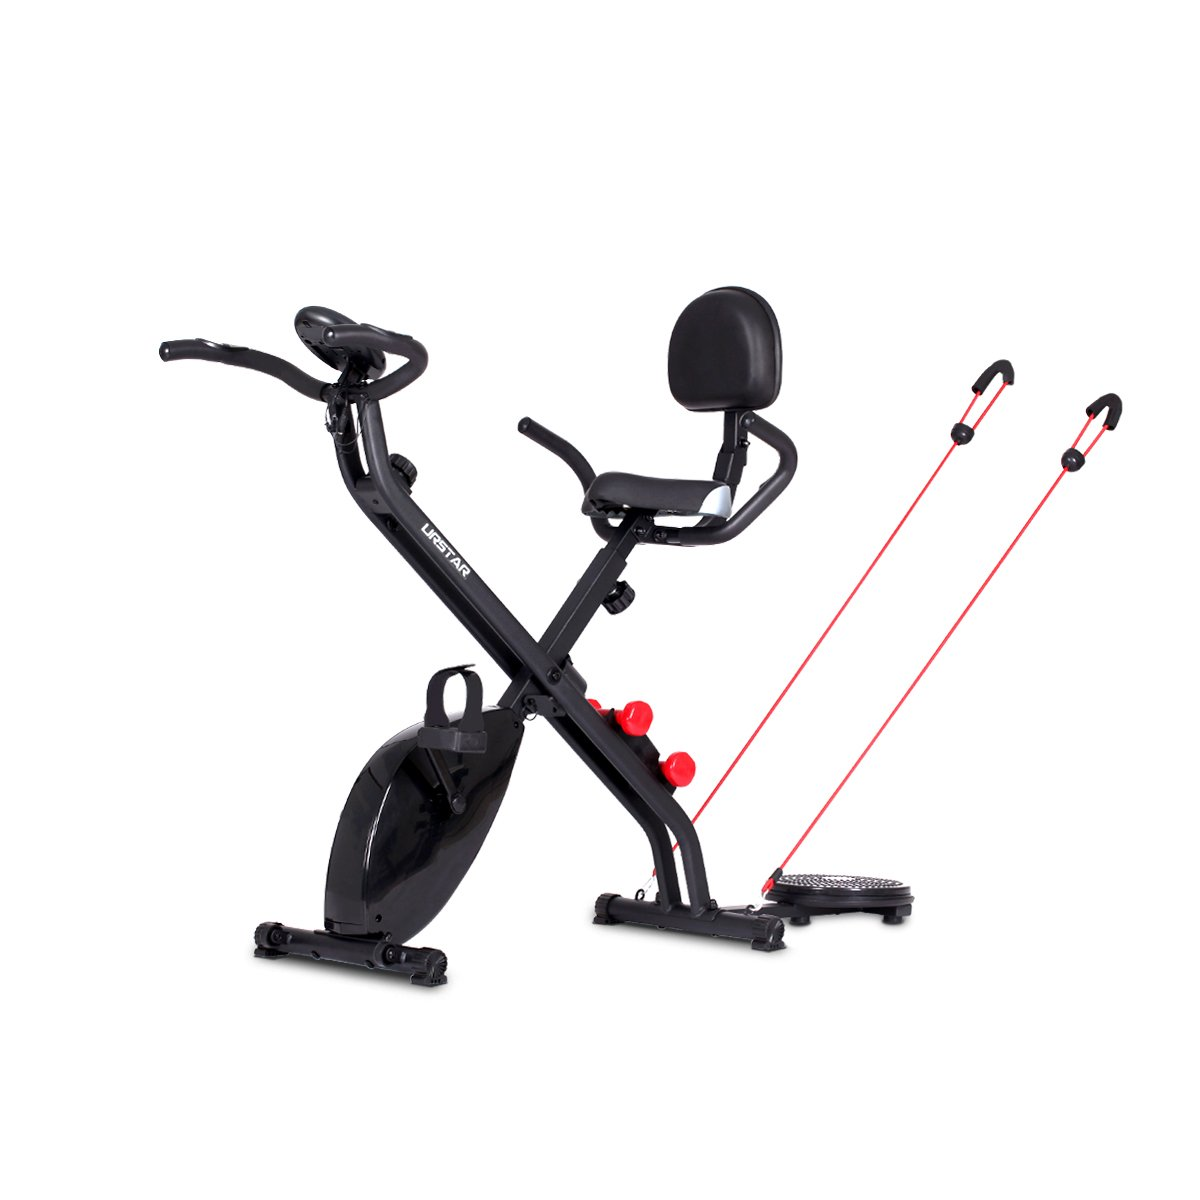 Multifunctional Folding Upright Exercise Bike with Pulse for Body Workout